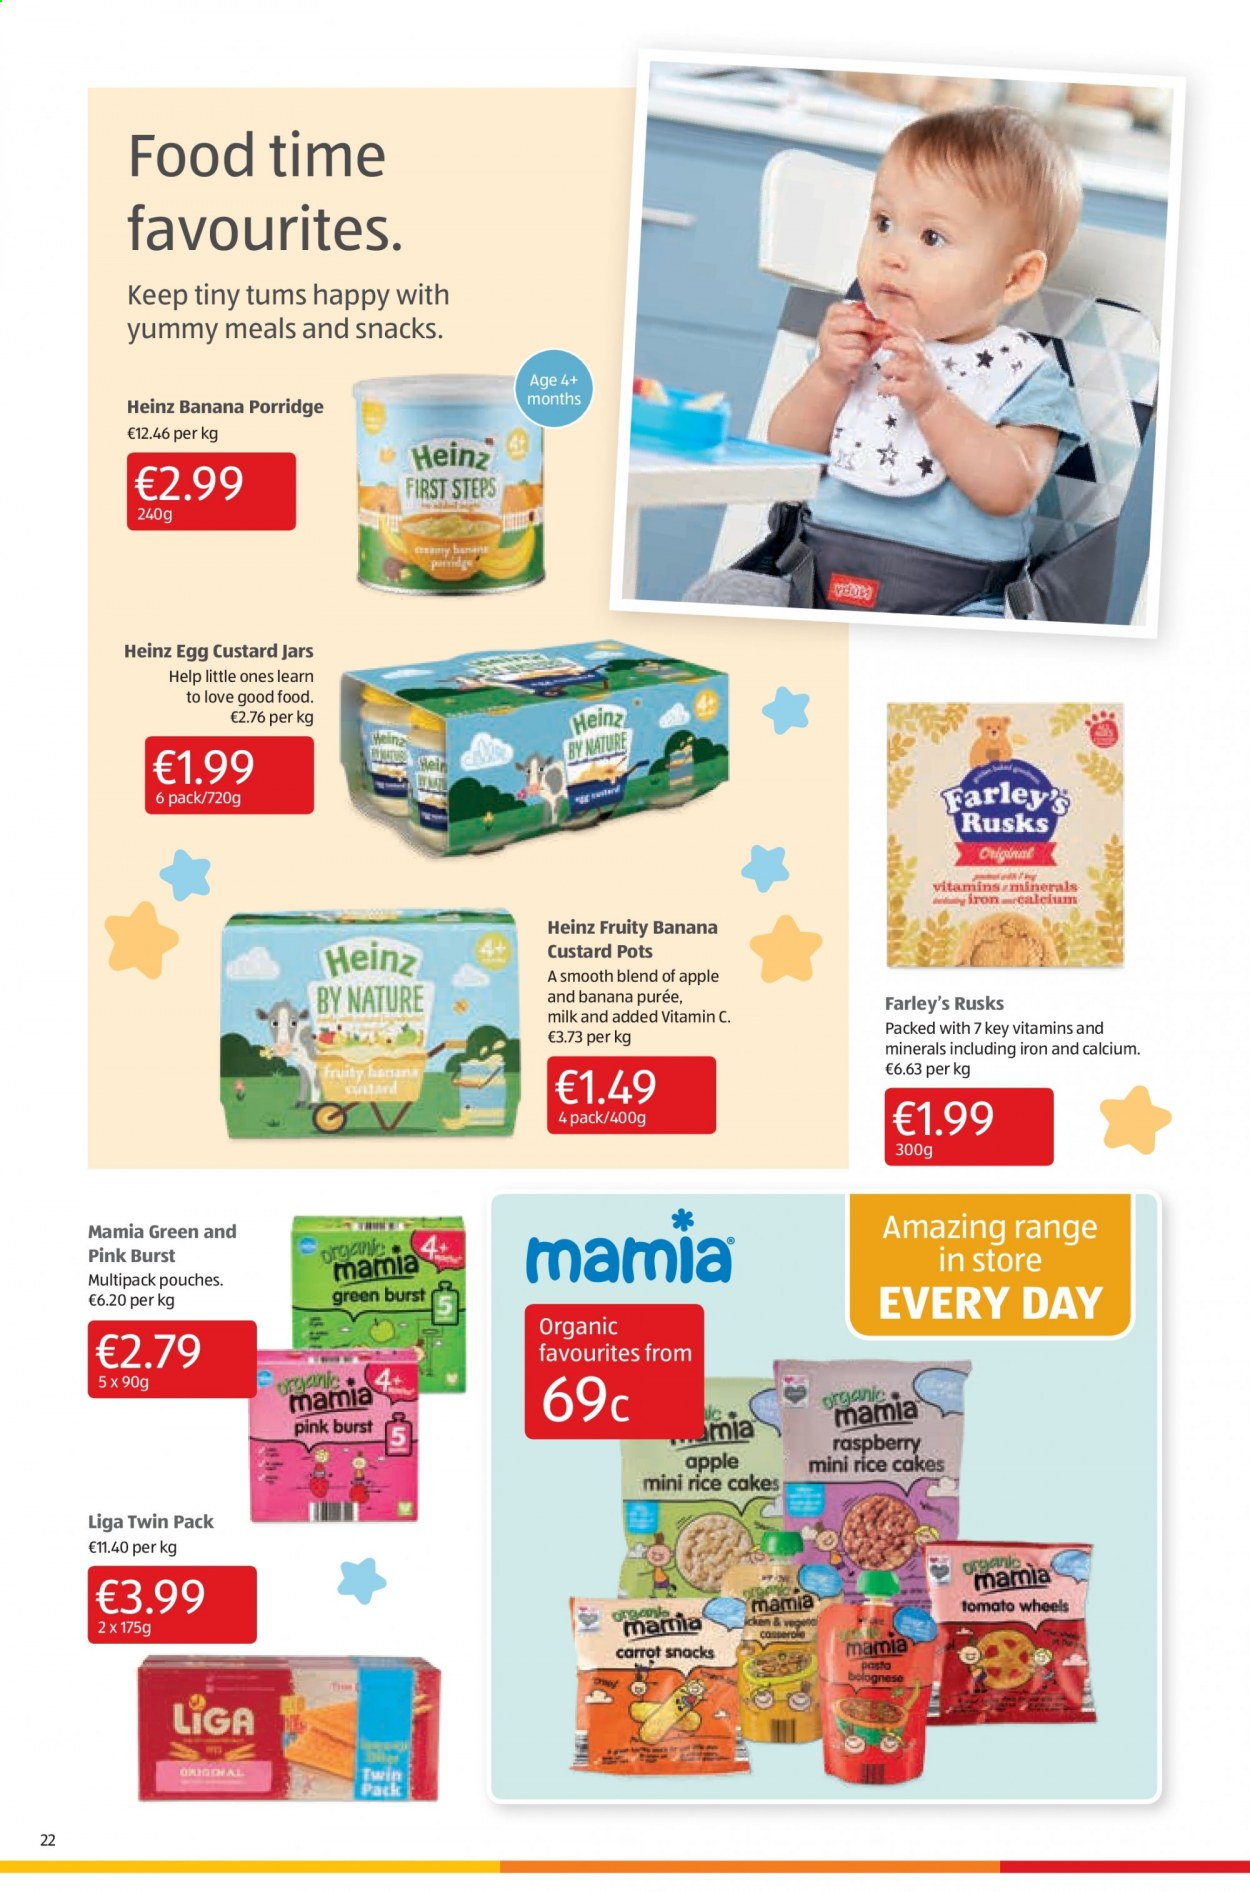 Aldi offer  - 13.8.2020 - 16.8.2020 - Sales products - calcium, custard, eggs, milk, rice, vitamin c, heinz, iron, jar, organic, snack, pasta, porridge, rusks, raspberry, tomato. Page 22.